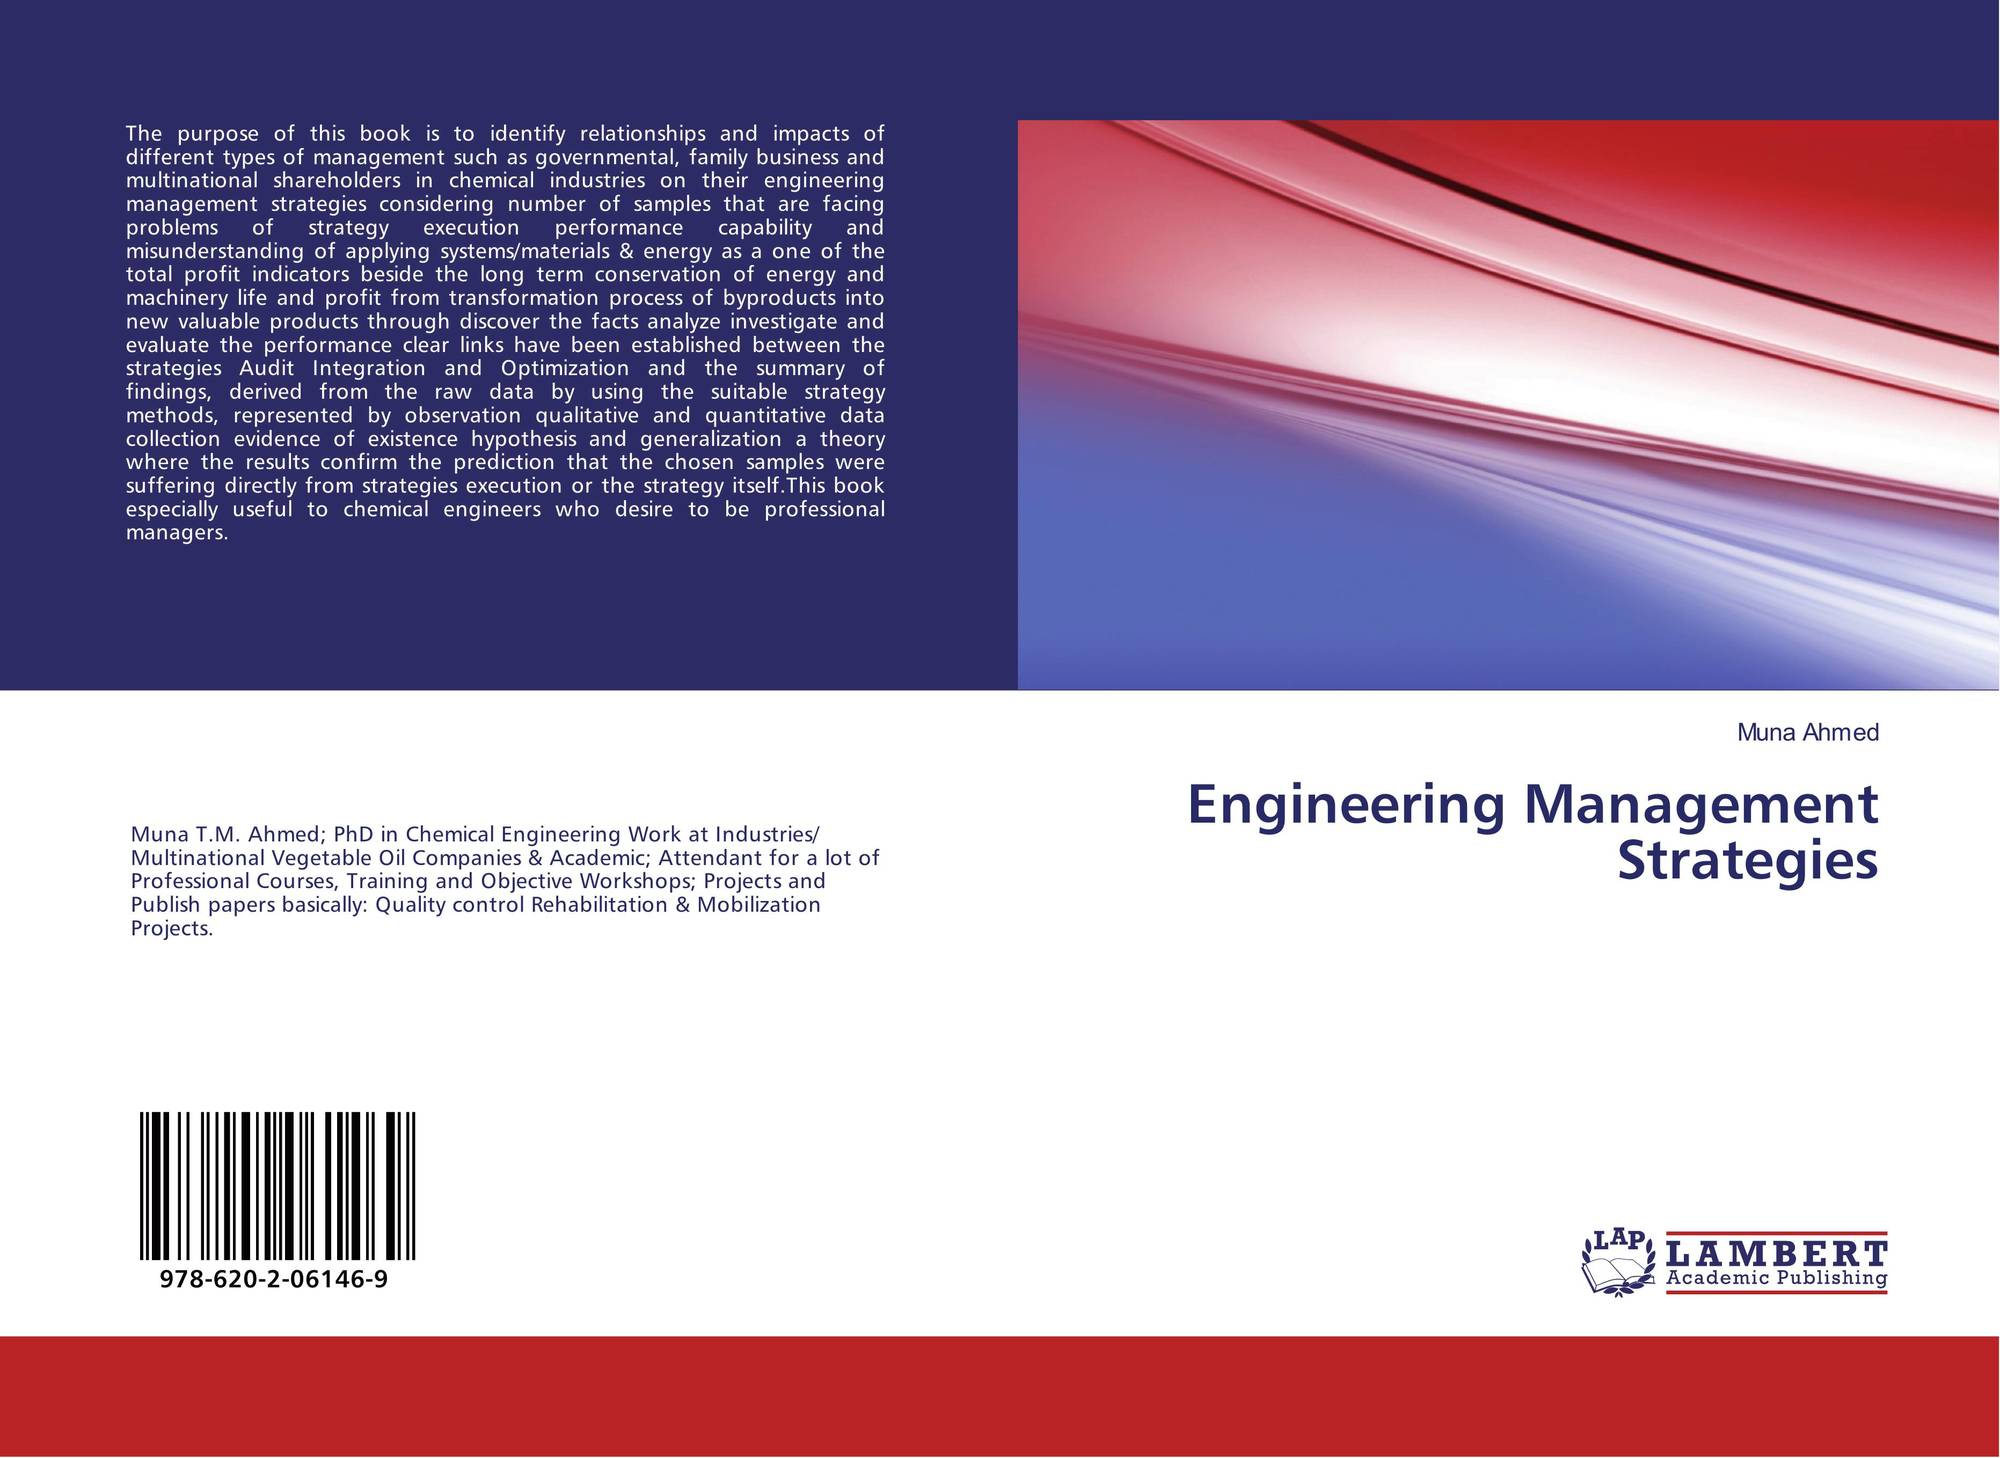 an analysis of quality based strategies applied in eastman chemical